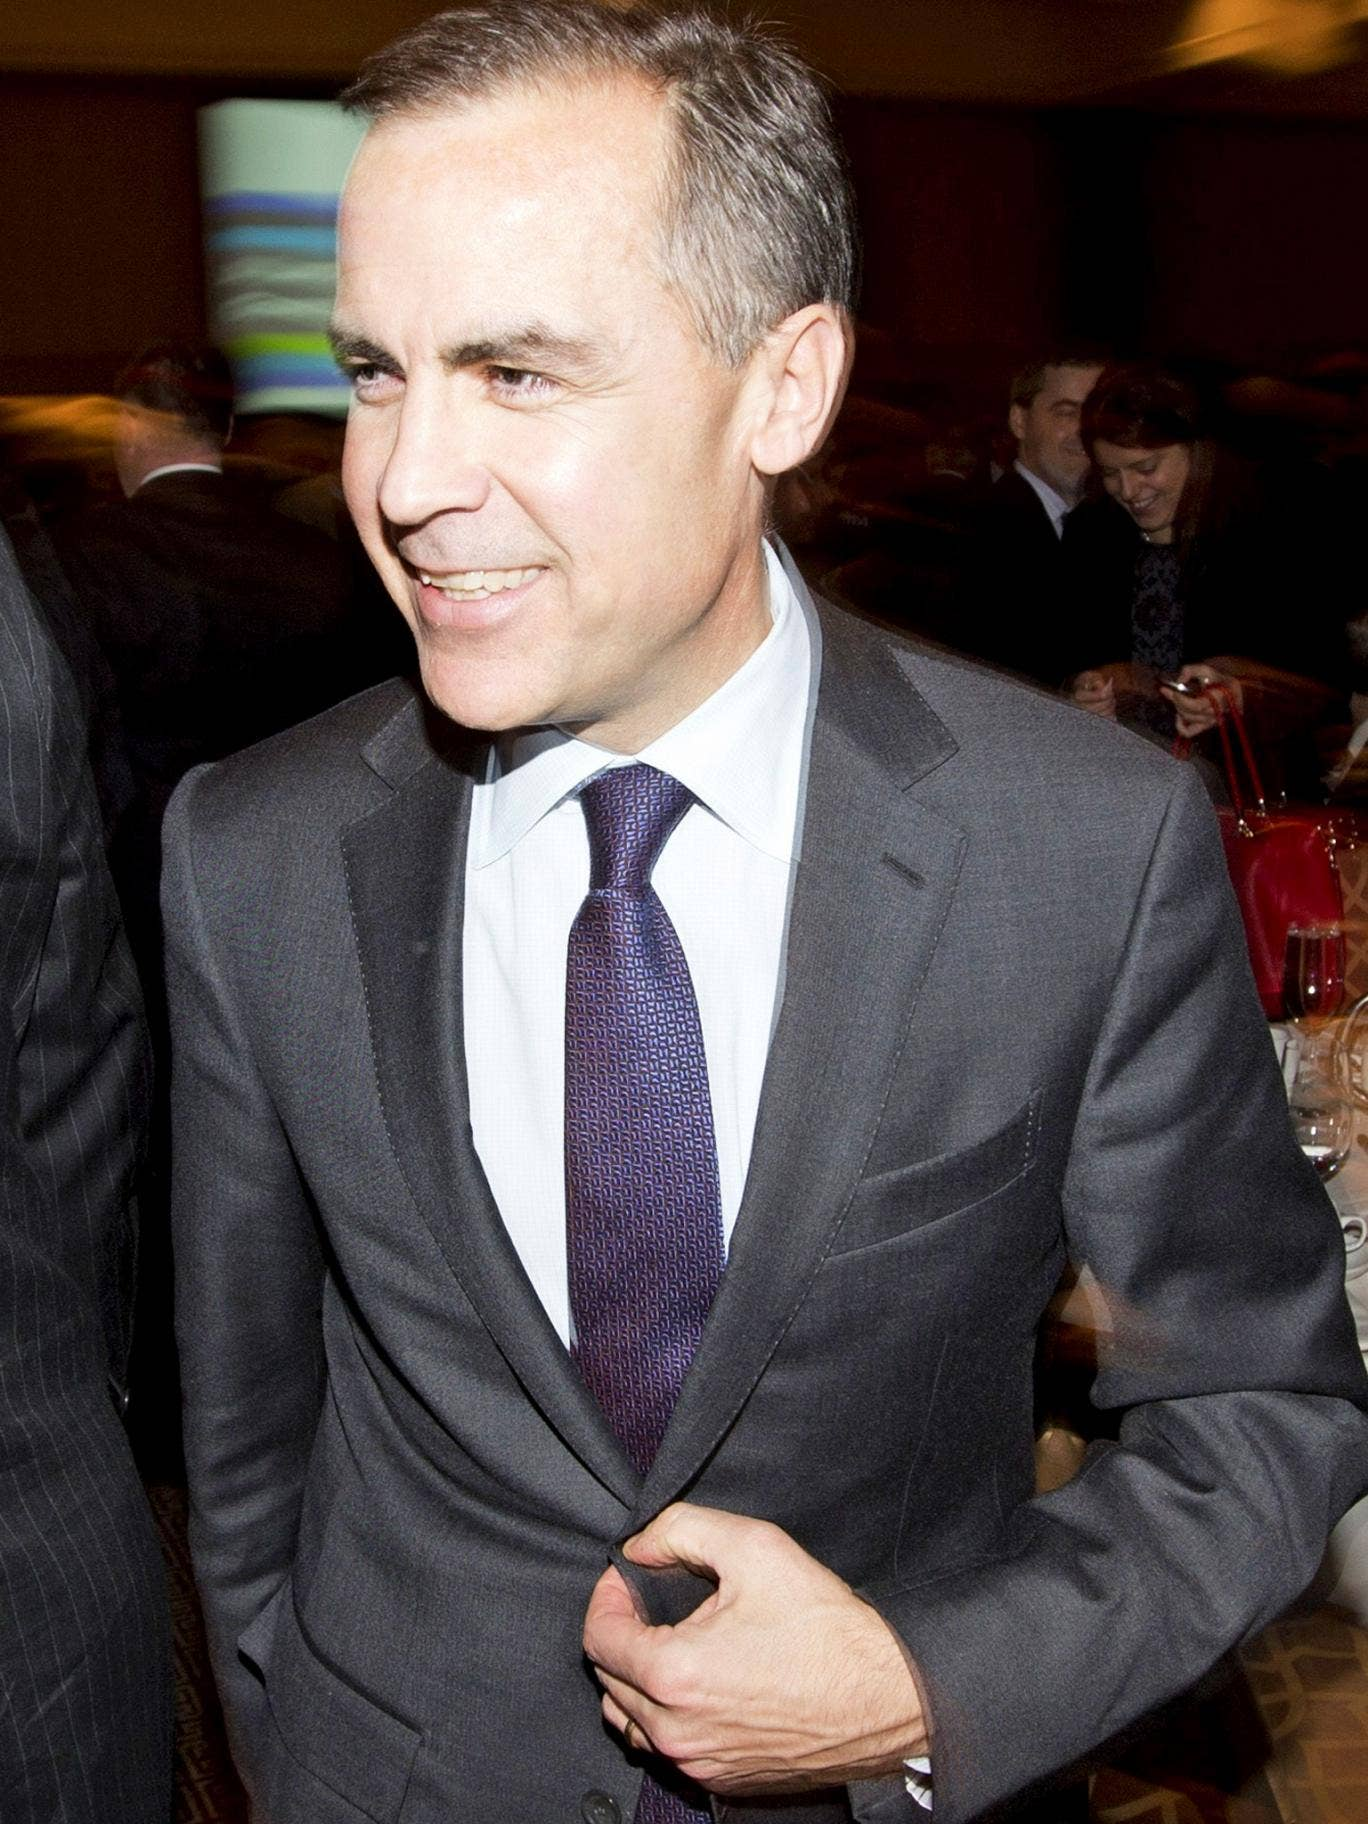 Mark Carney, the Bank of England's next Governor